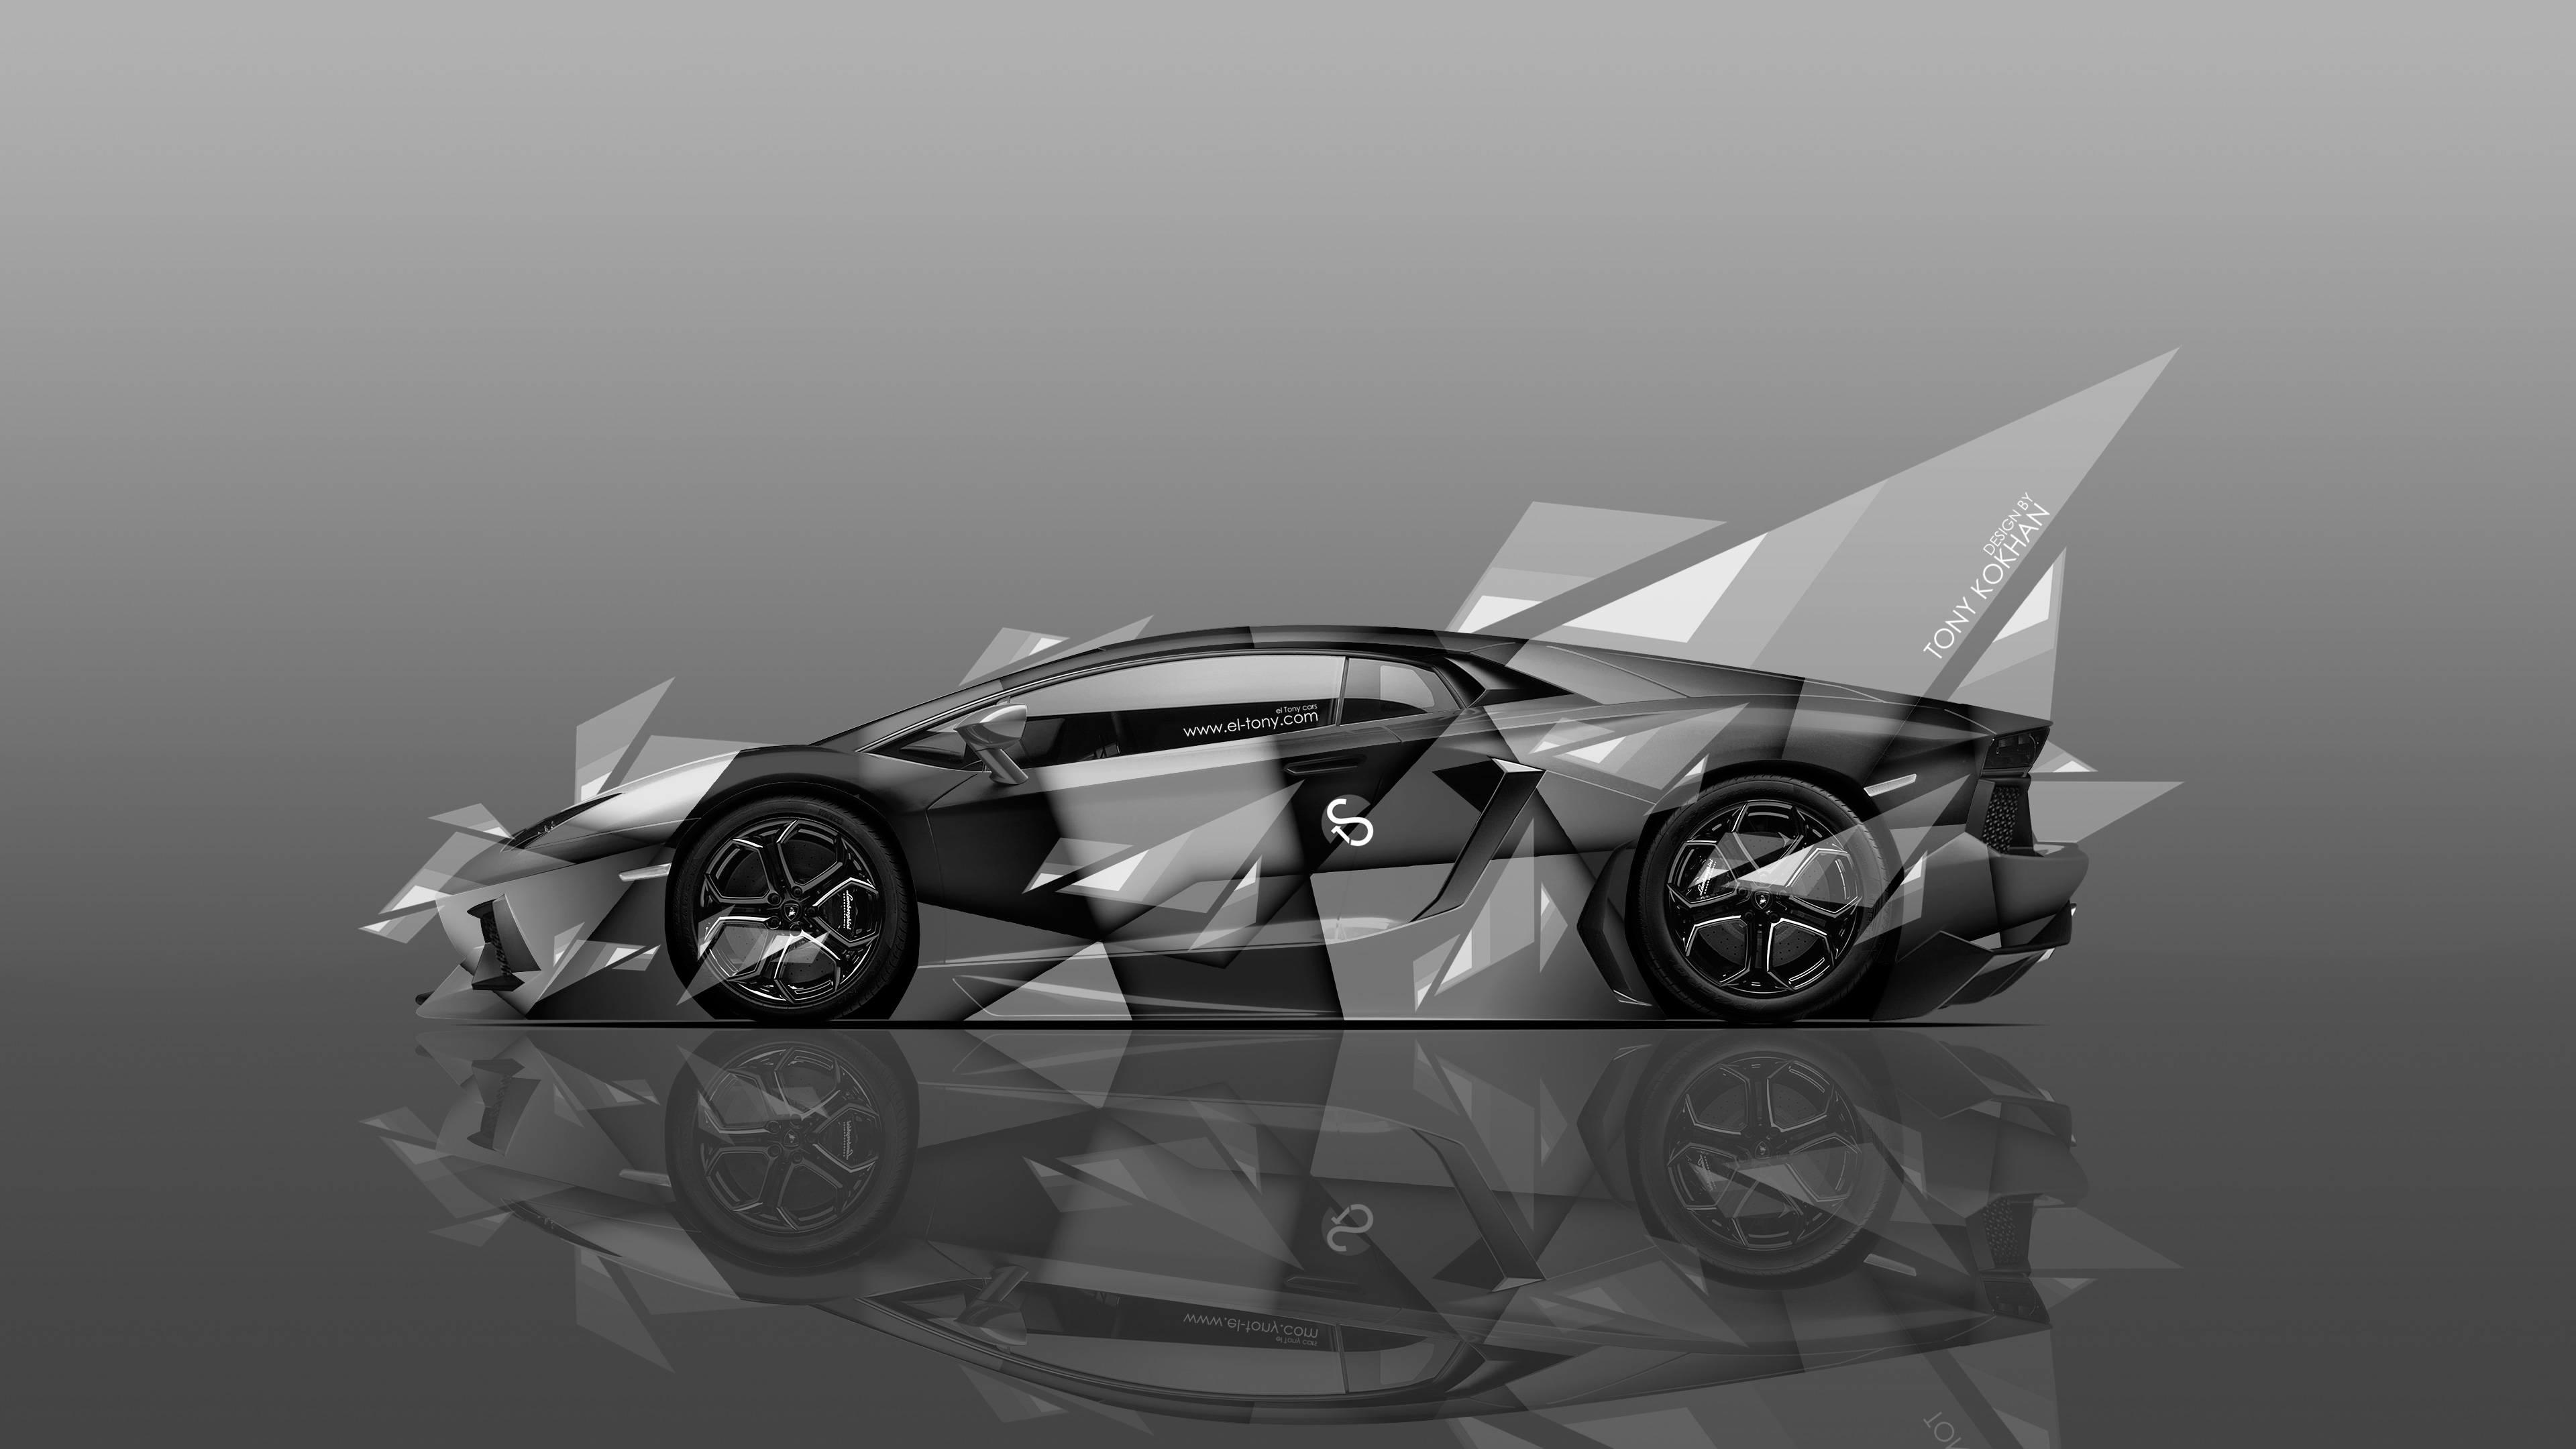 Lamborghini Aventador Side Abstract Aerography Car 2014 Black .